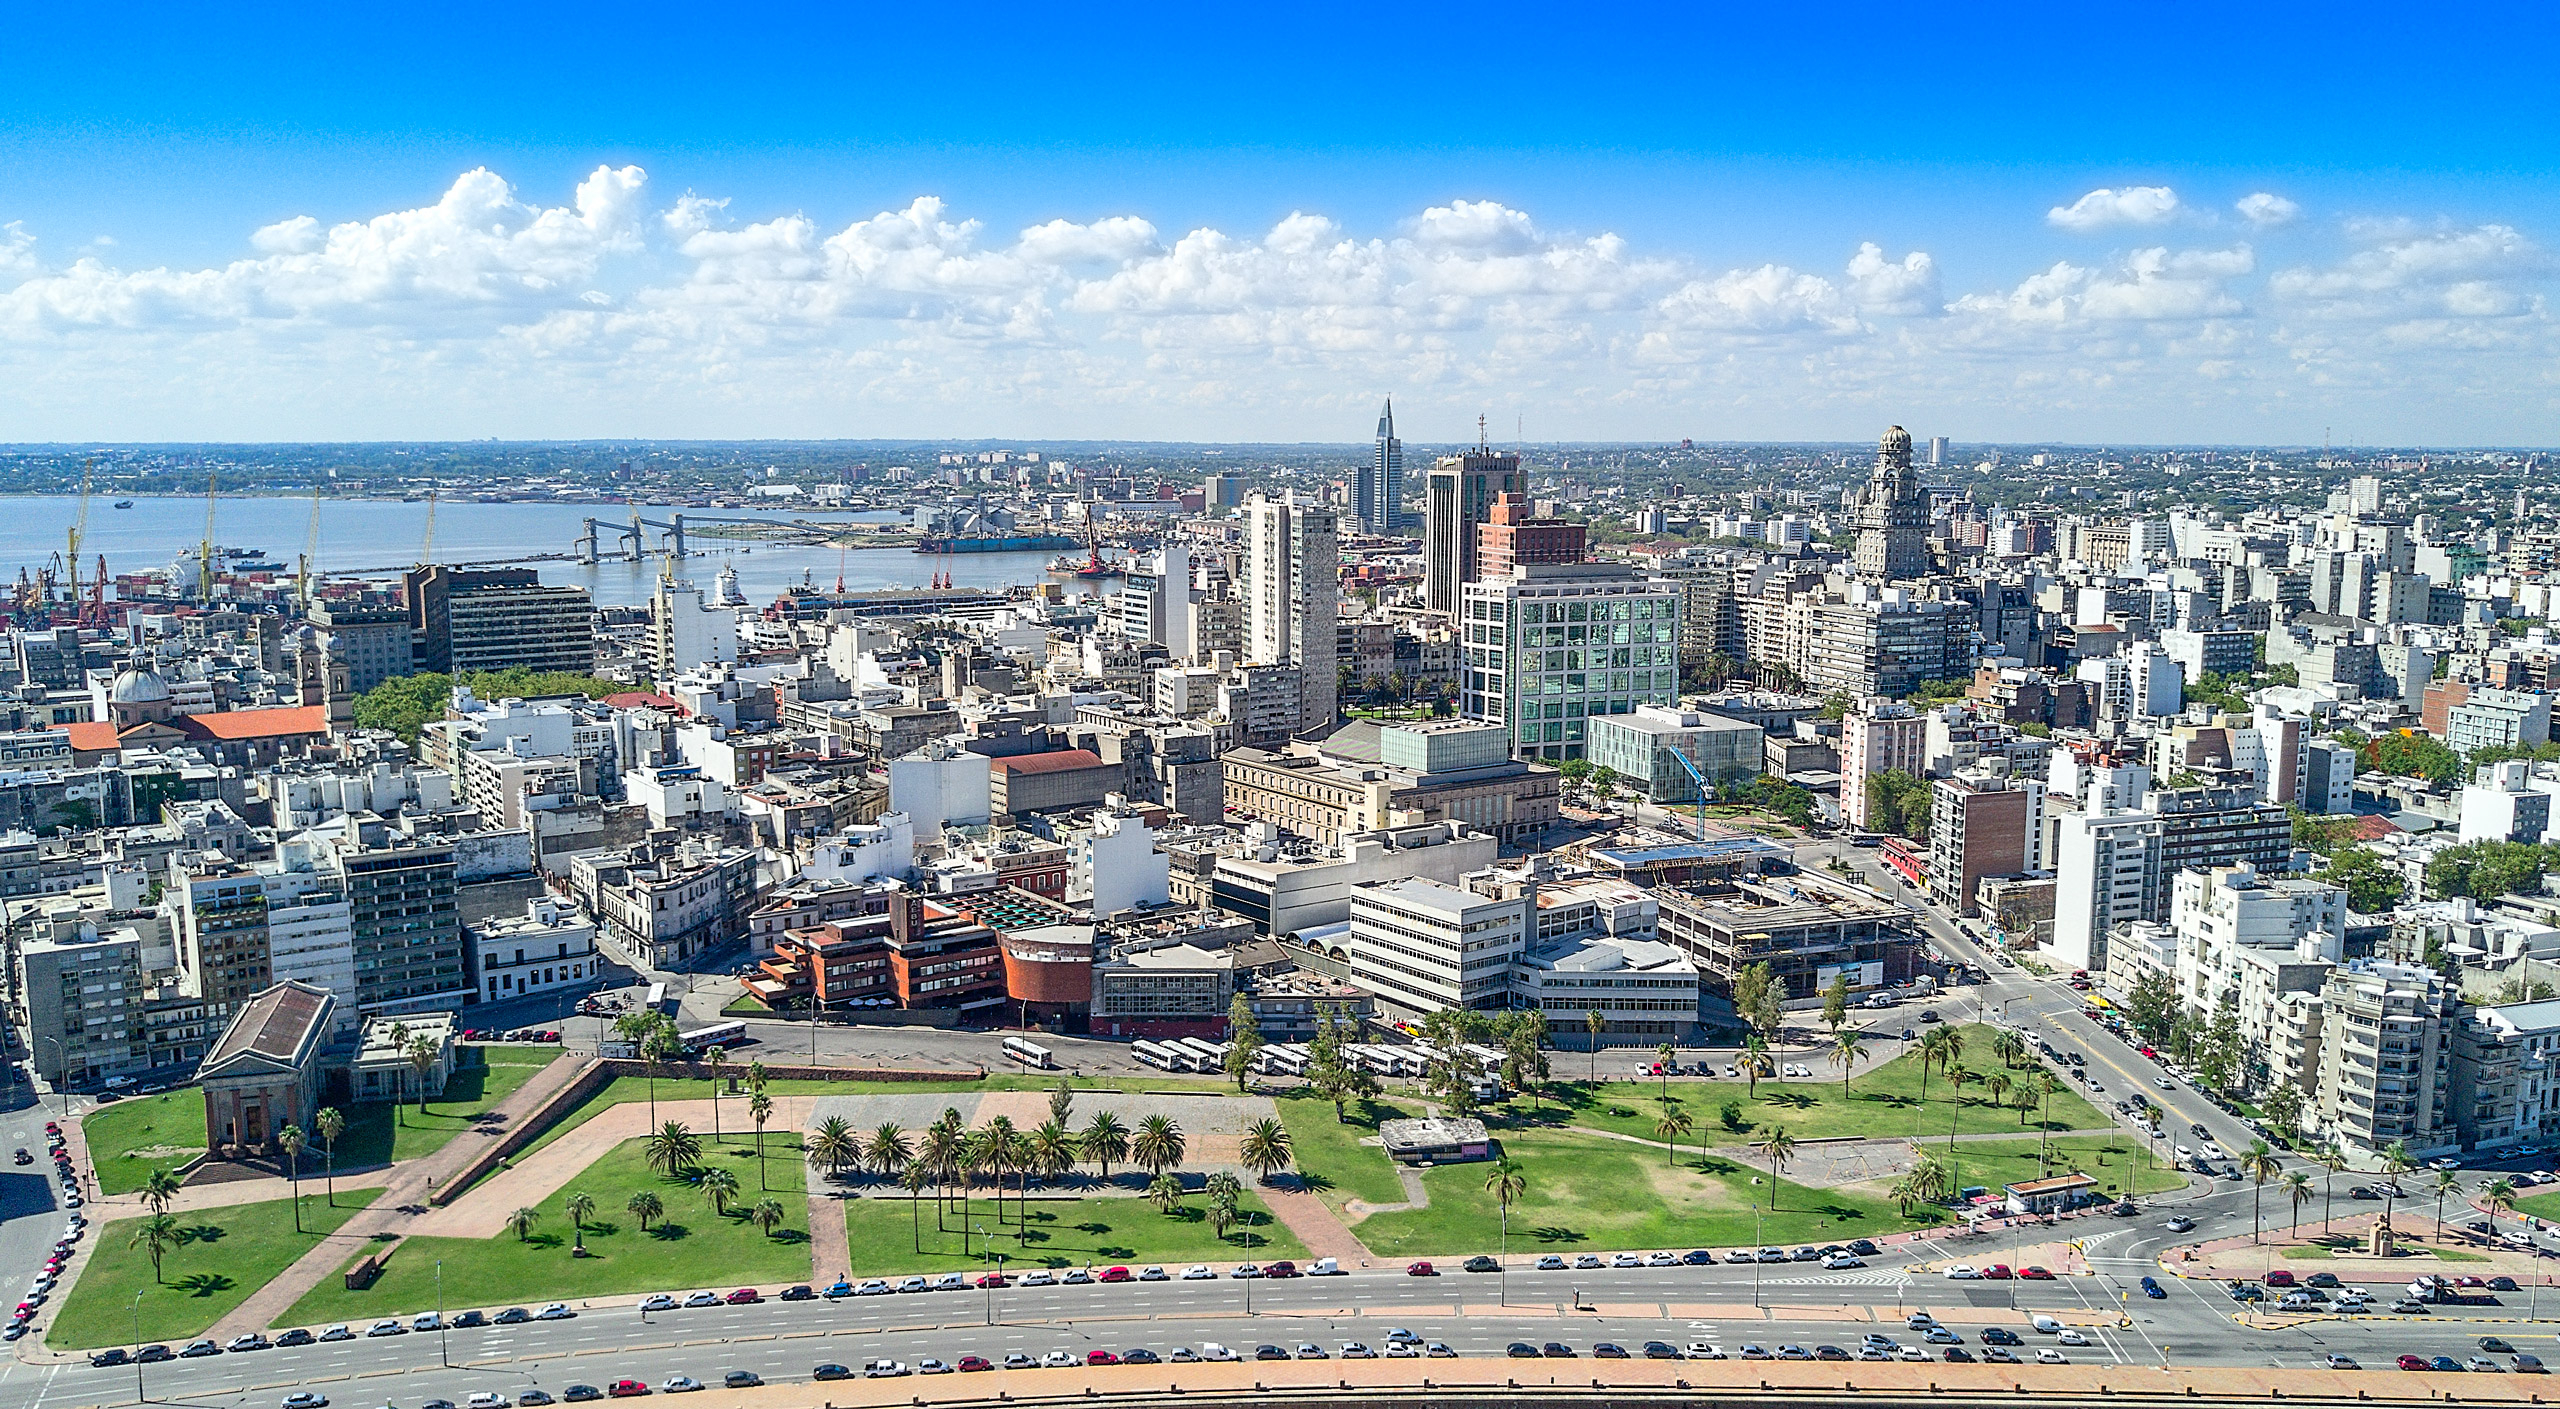 Get to know the city of Montevideo